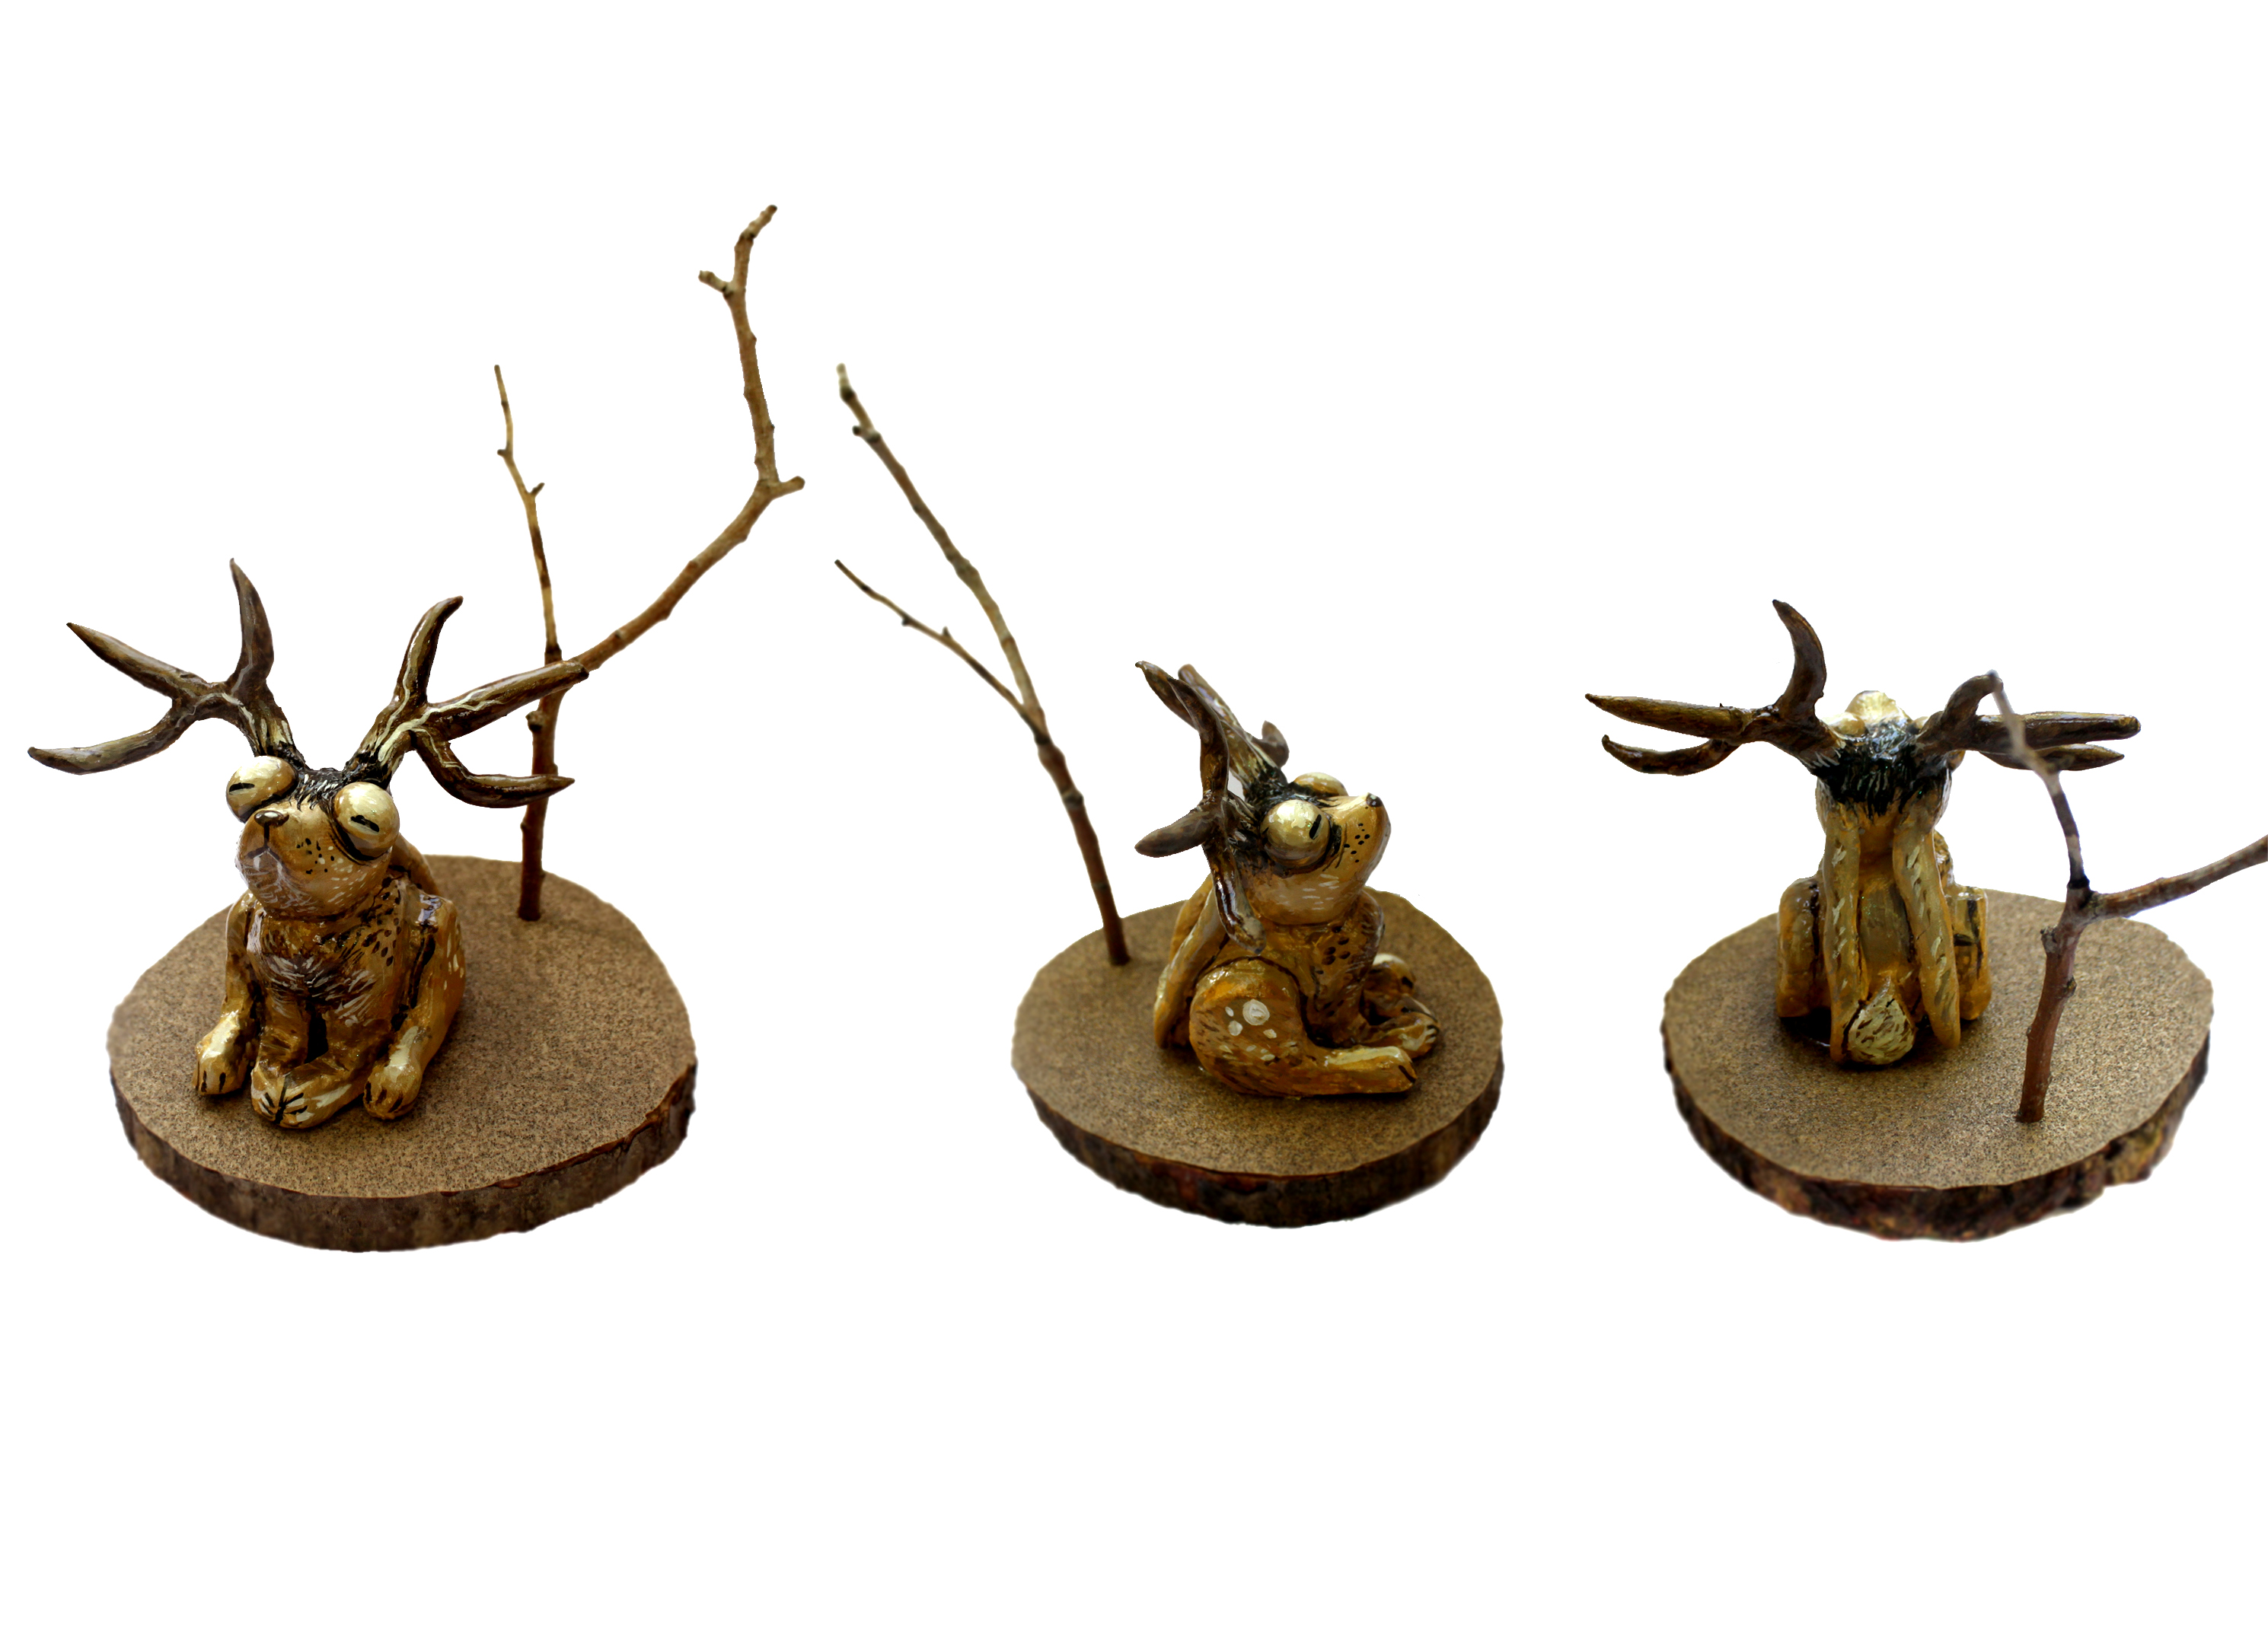 Jackalope Sculpture